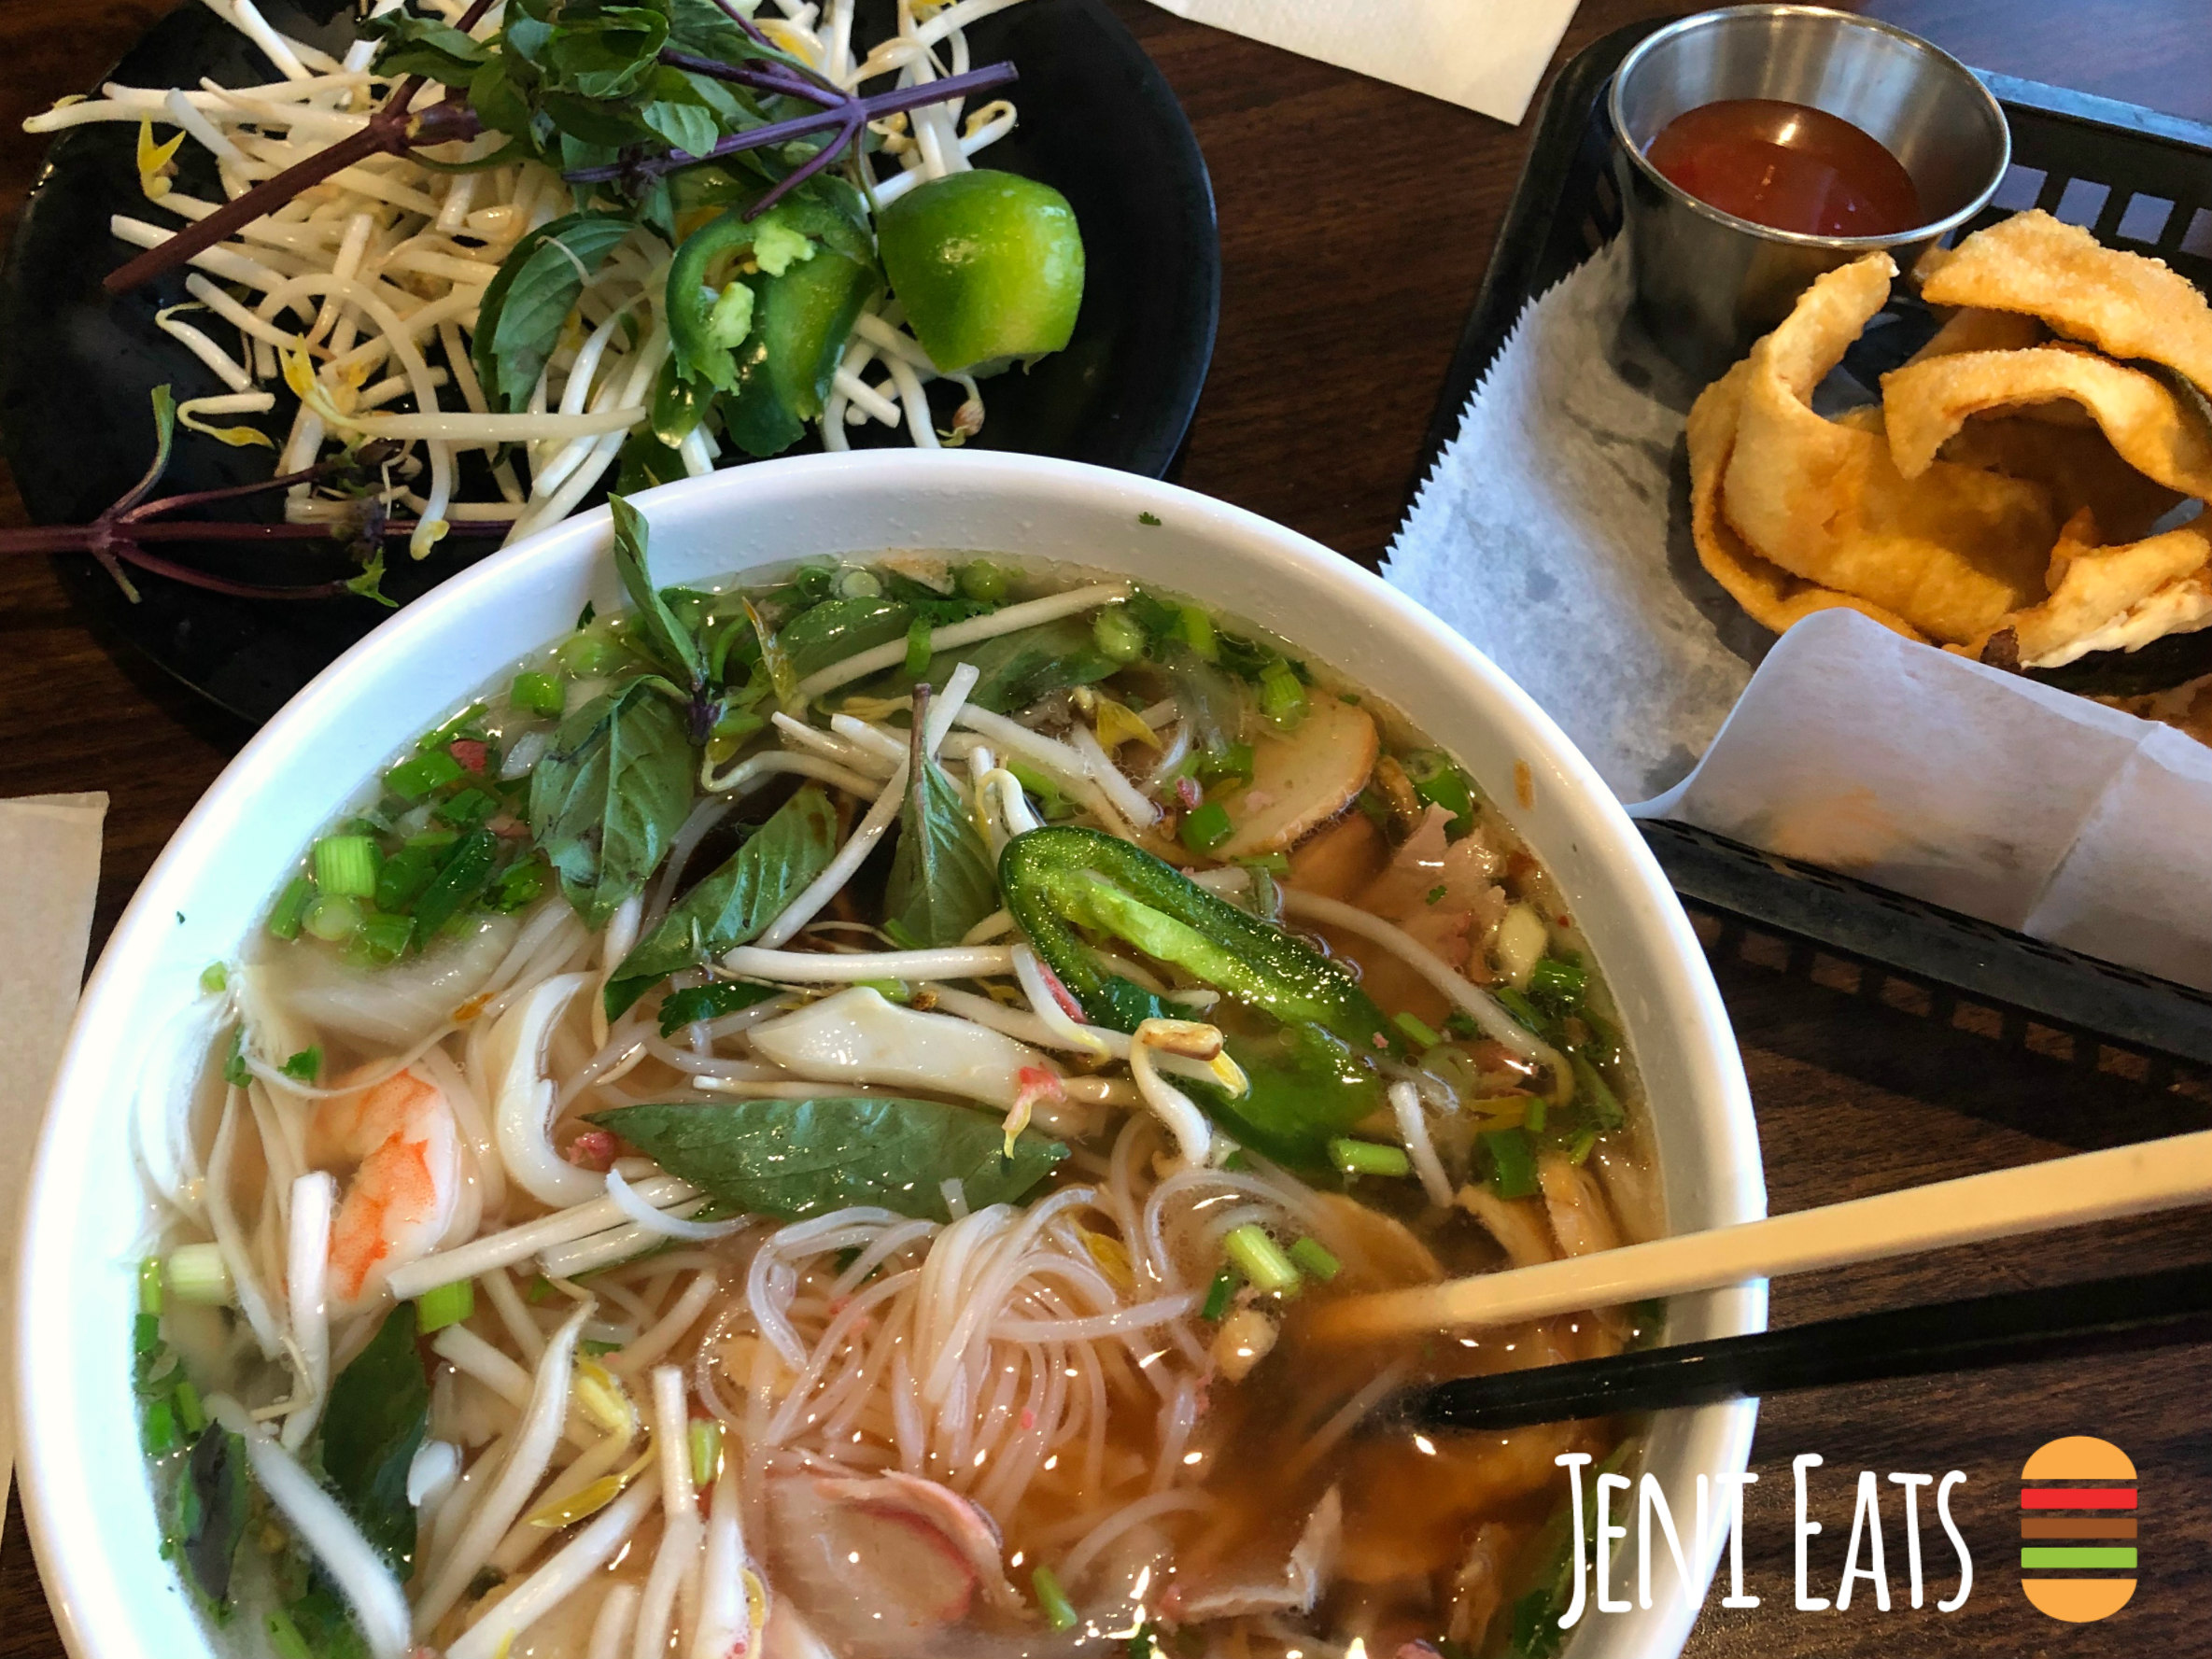 Vietnamees Restaurant Maastricht Branching Out Trying Two New To Me Vietnamese Restaurants On